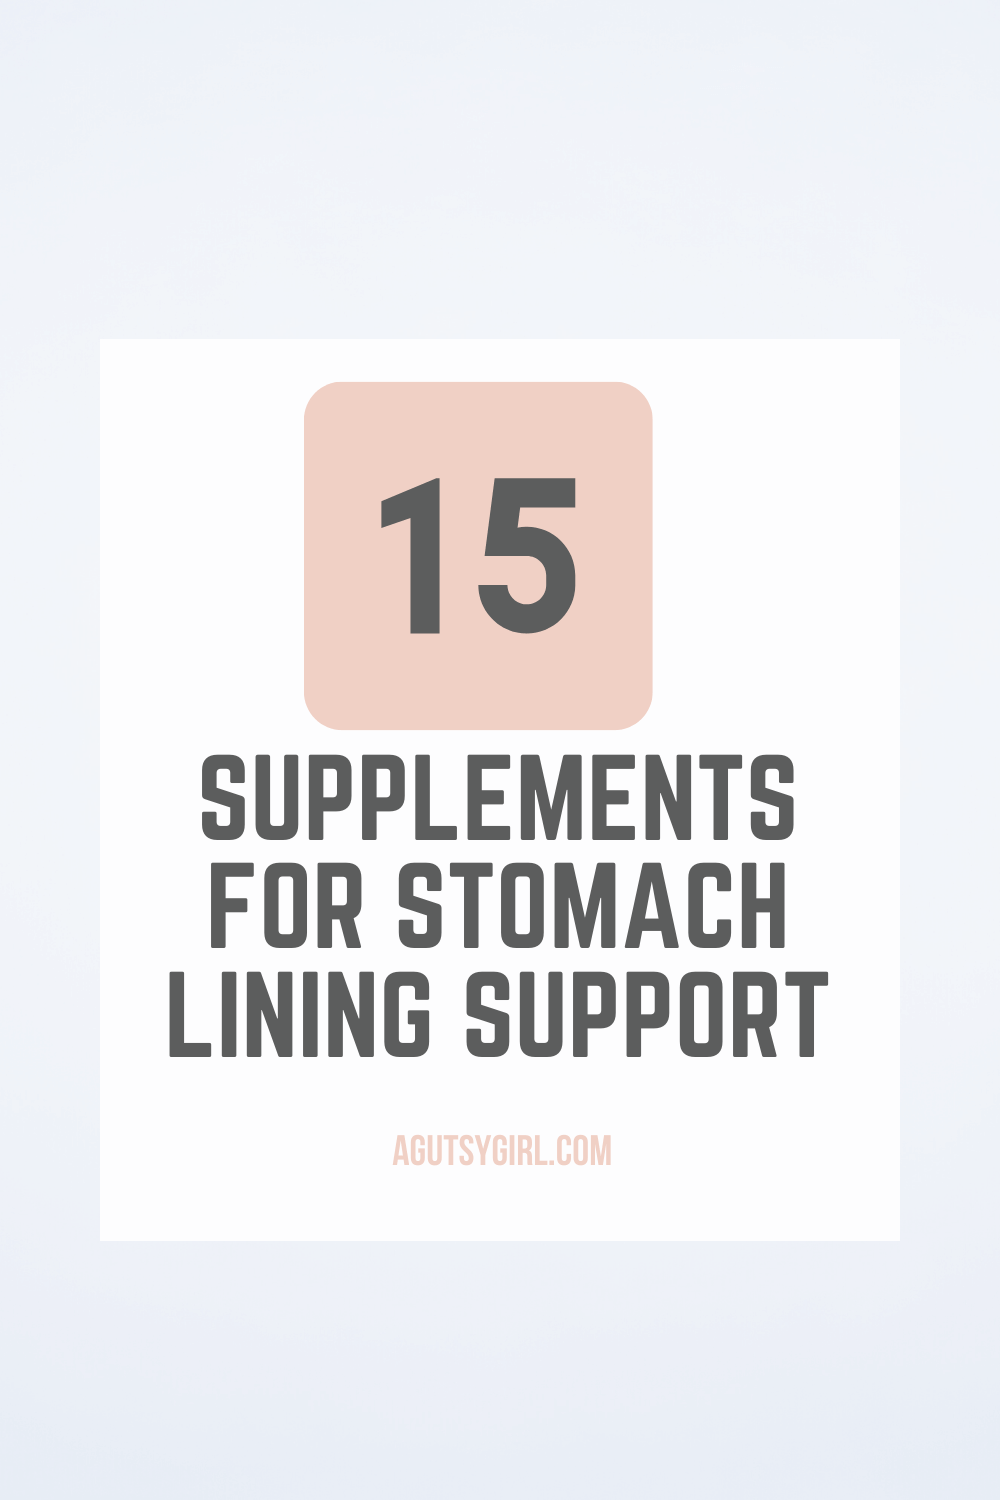 15 Supplements for Stomach Lining Support agutsygirl.com #guthealth #supplements #gut #supplement